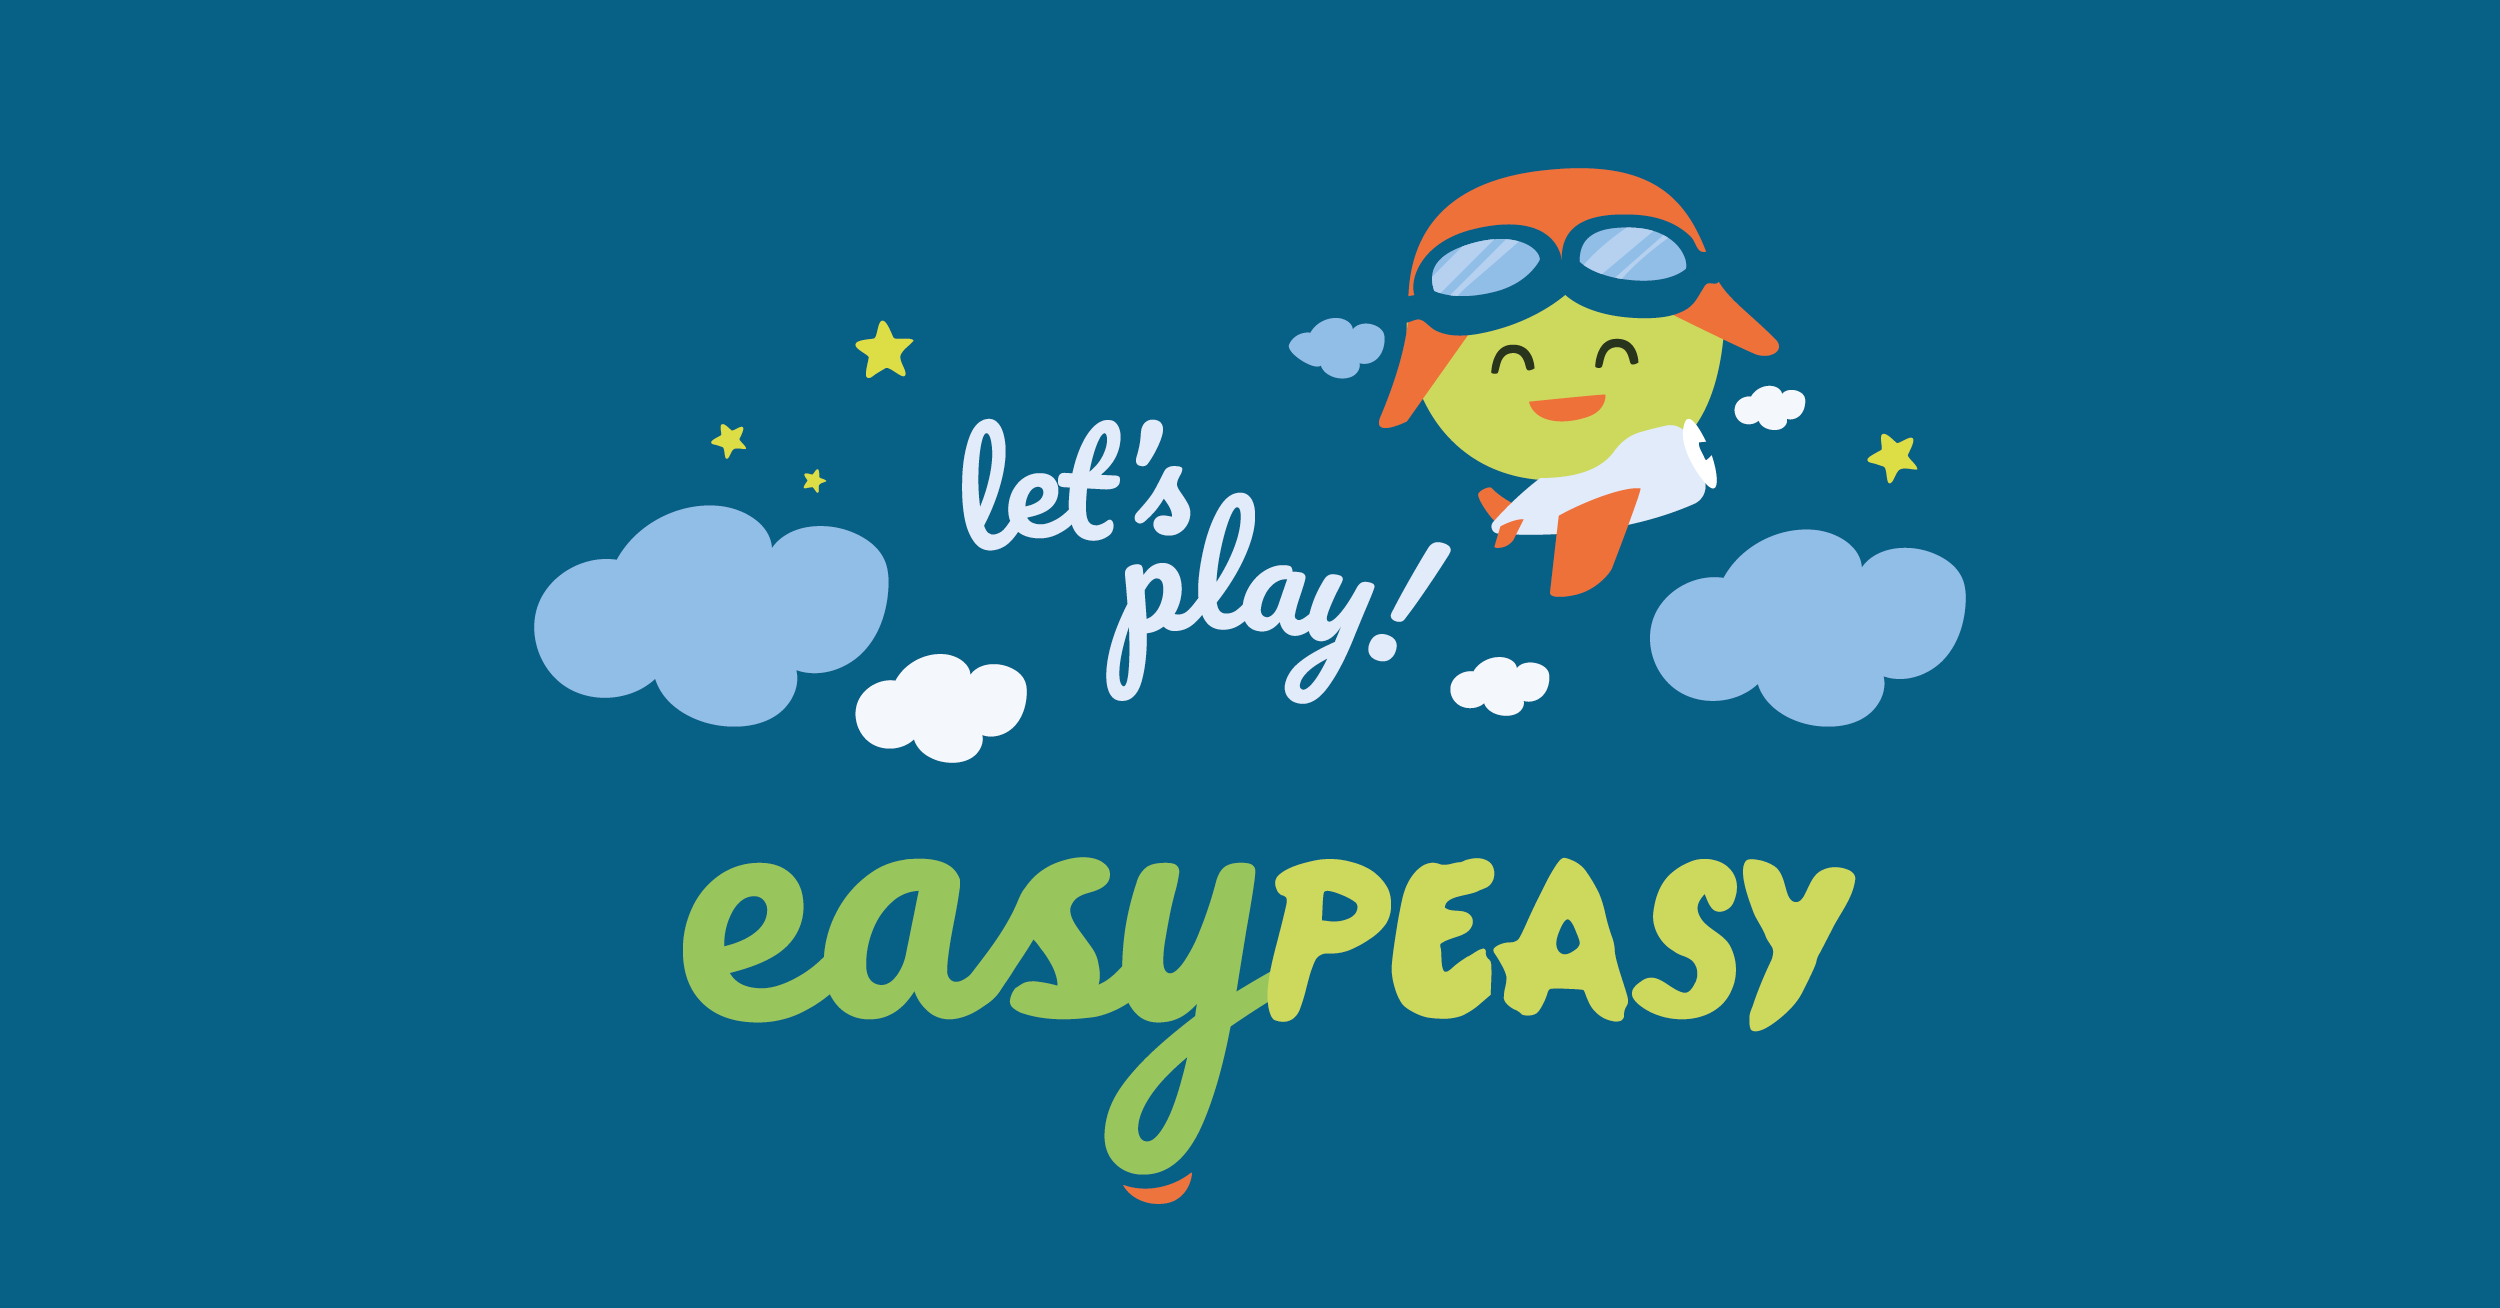 EasyPeasy - let's play image